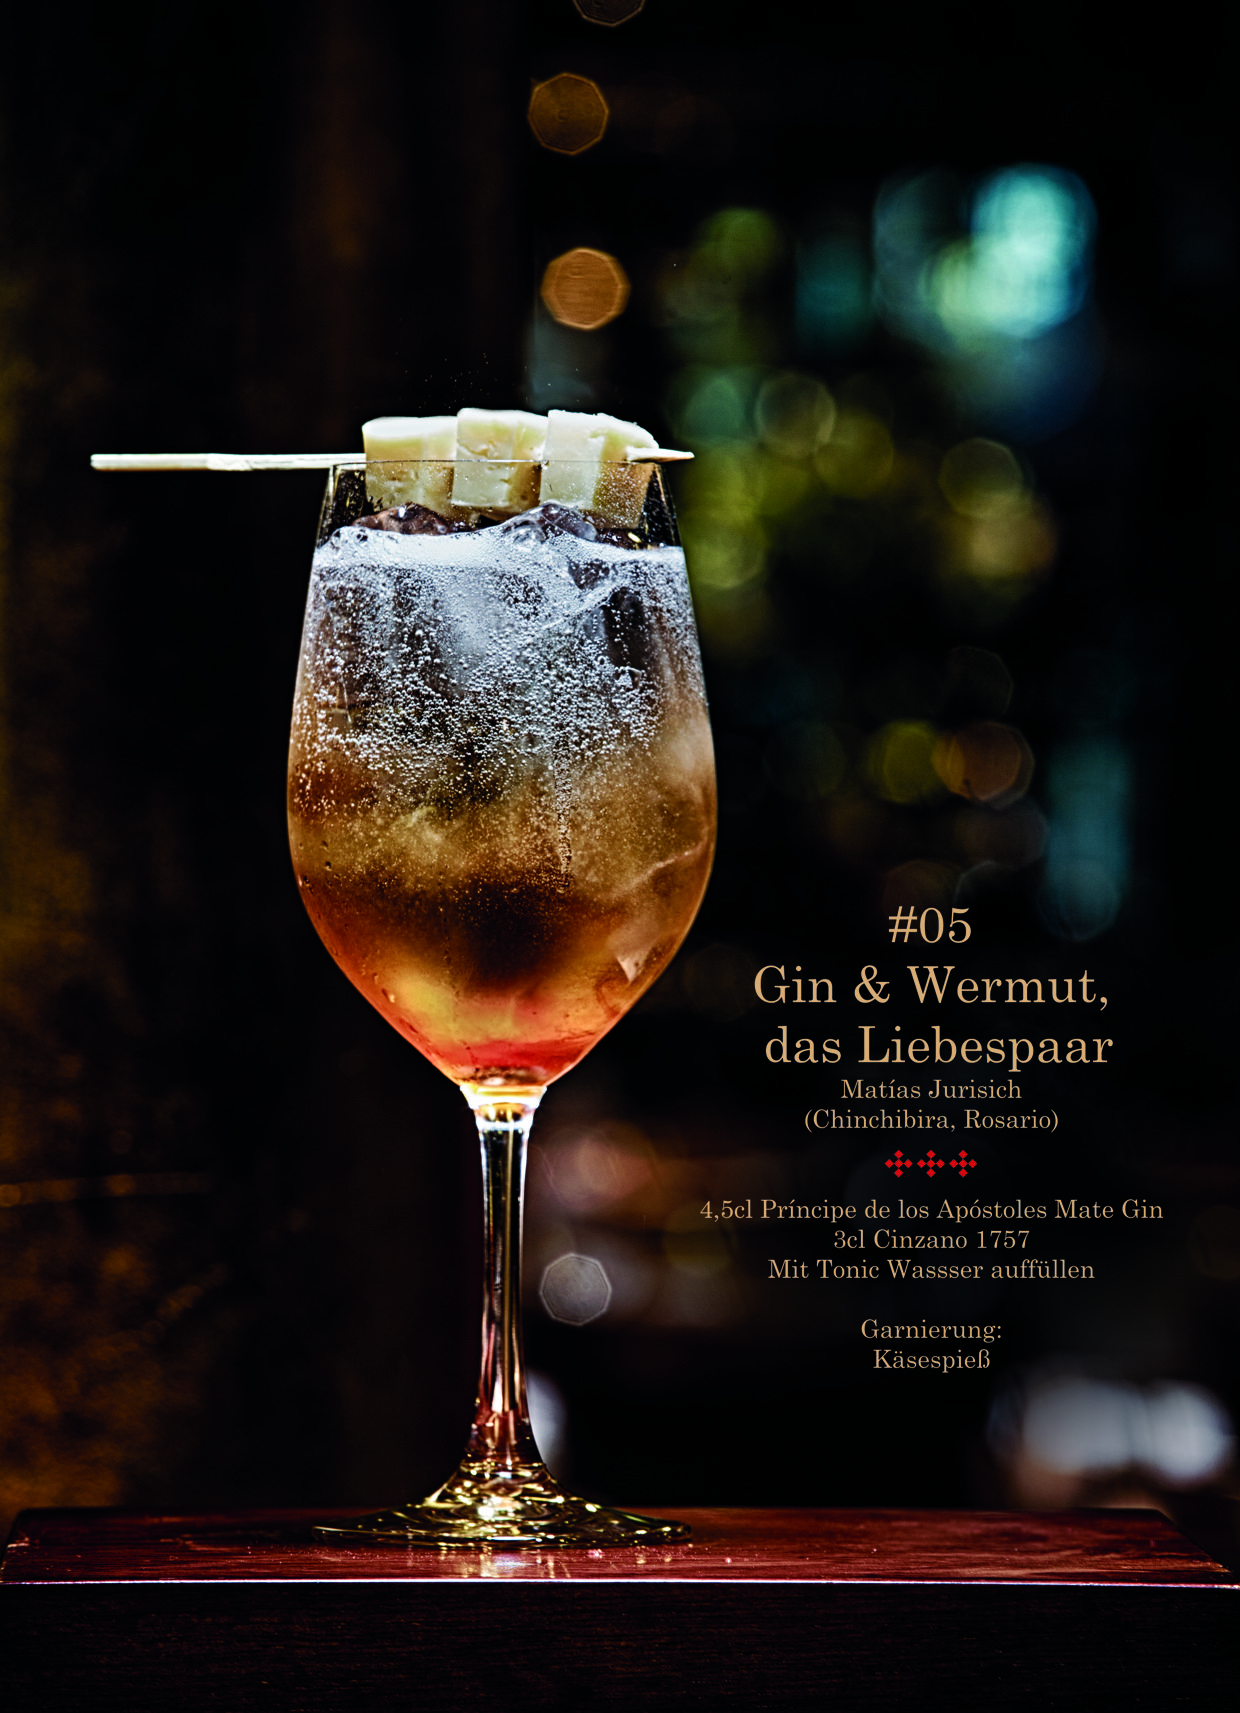 Gin & Wermut Cocktail